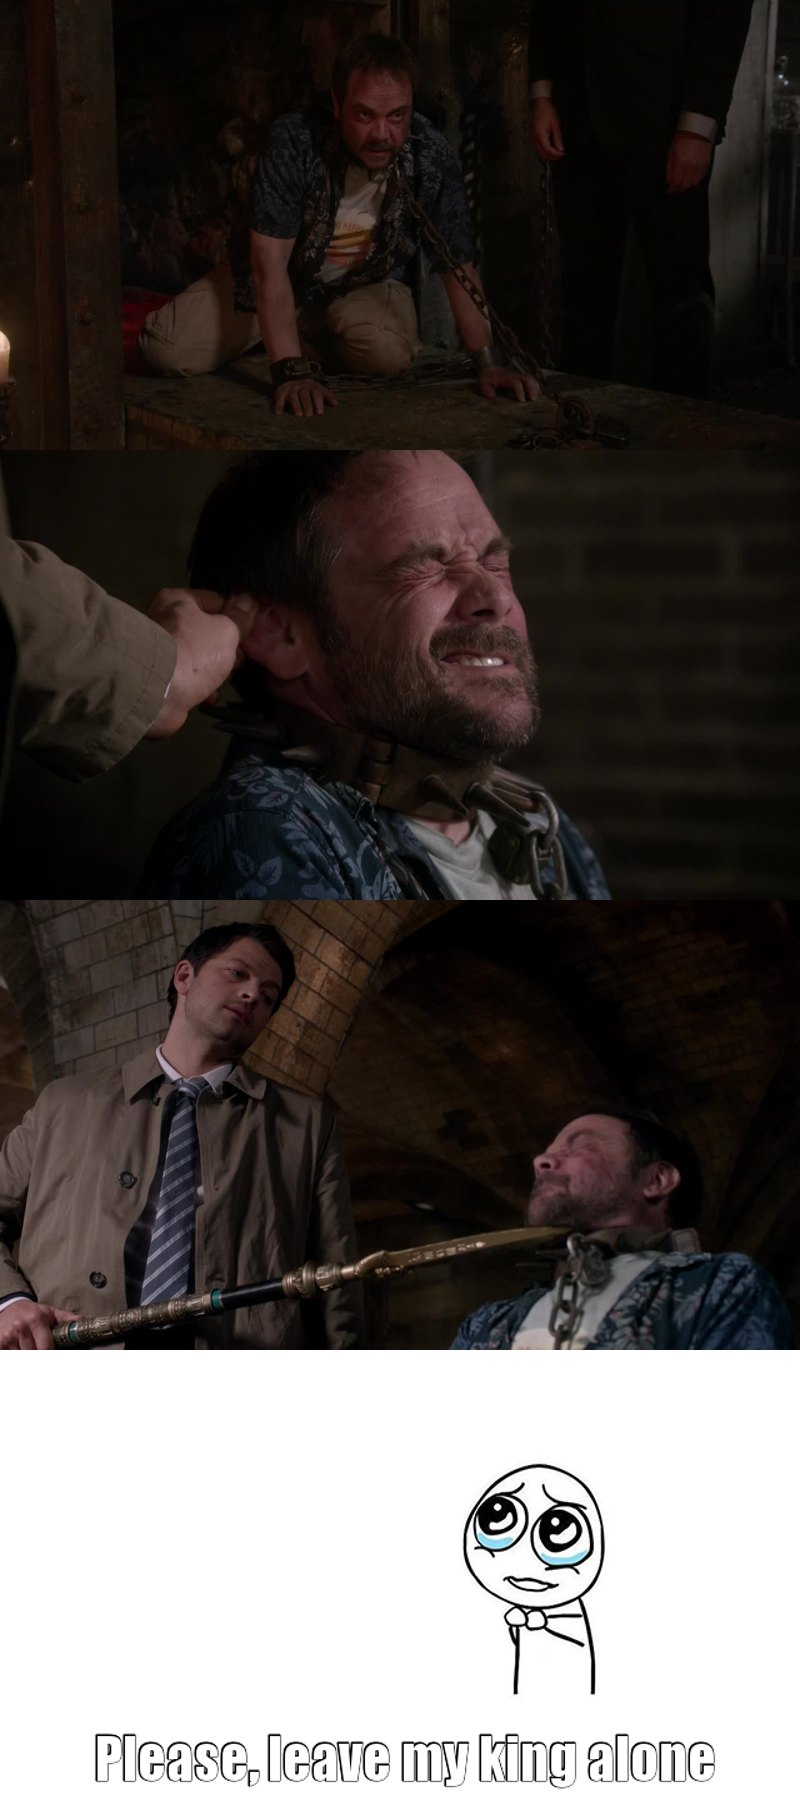 Poor Crowley 😔